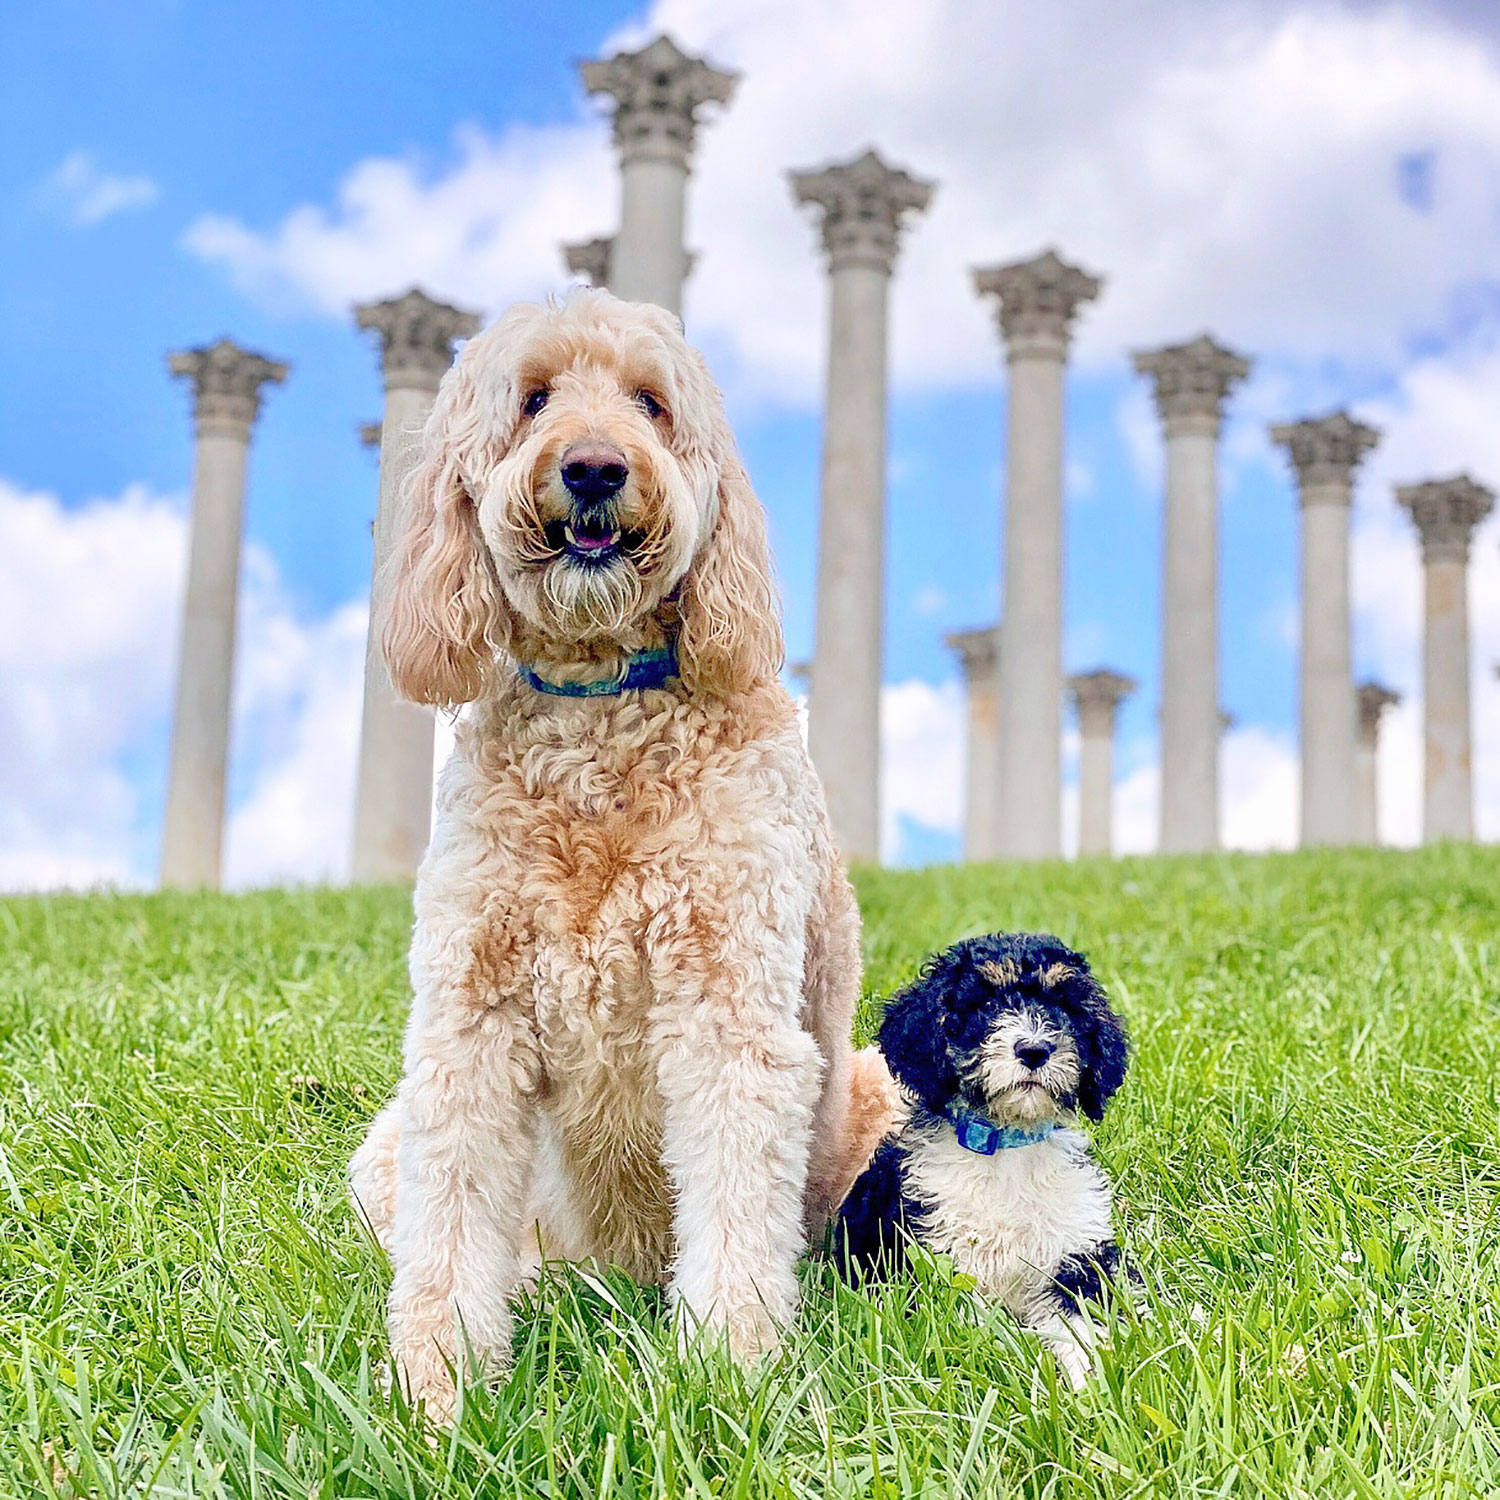 Colby the Goldendoodle and Blue the Sproodle